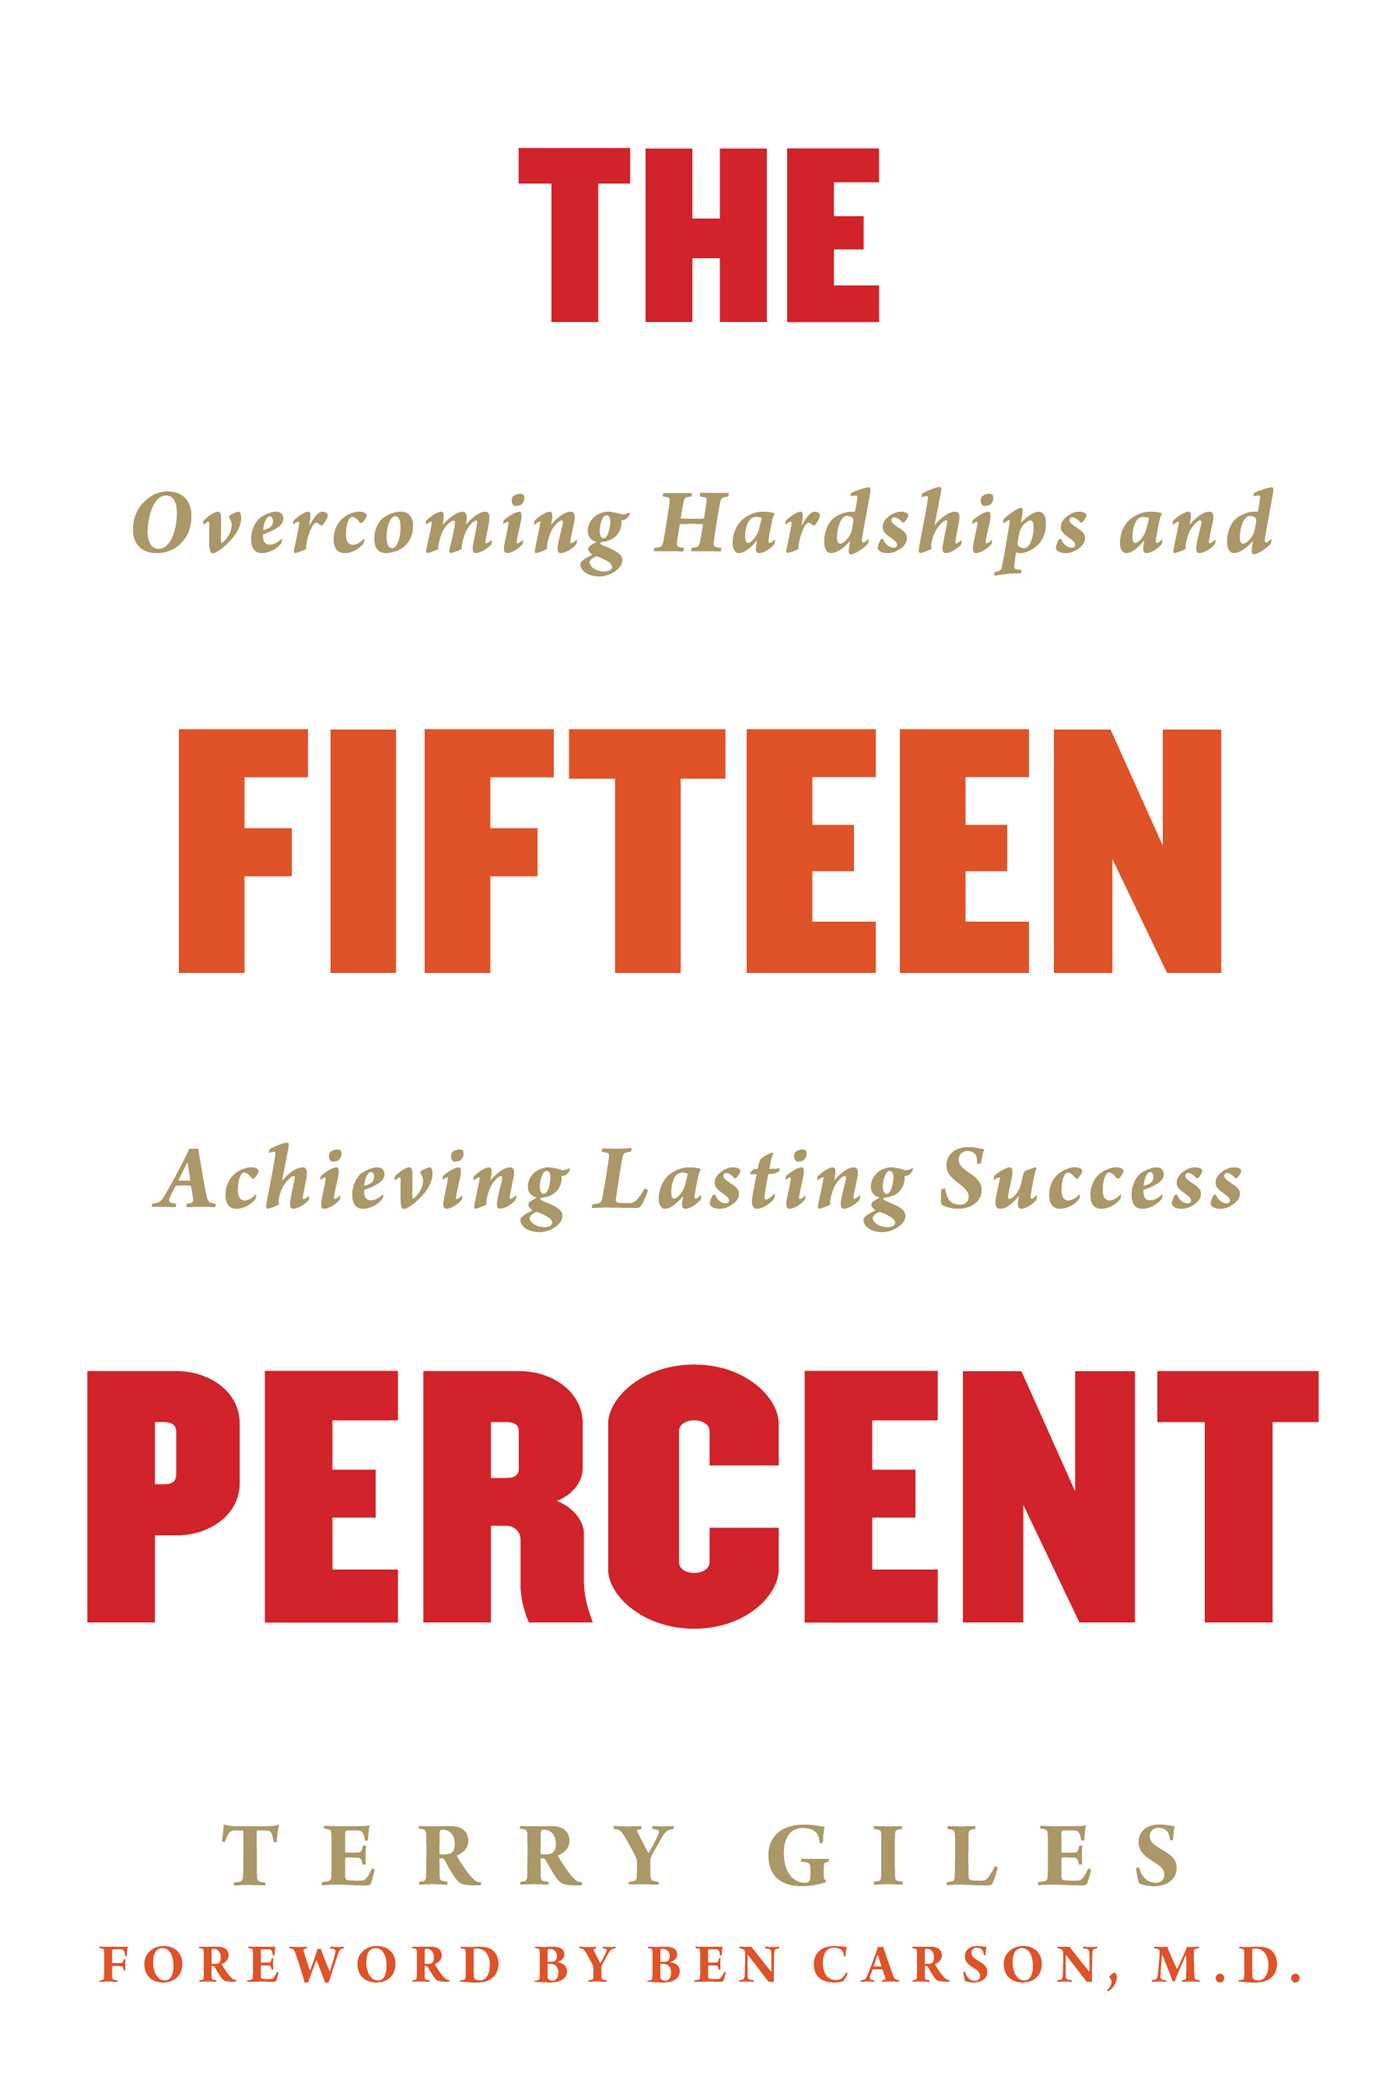 [PDF] [EPUB] The Fifteen Percent: Overcoming Hardships and Achieving Lasting Success Download by Terry Giles